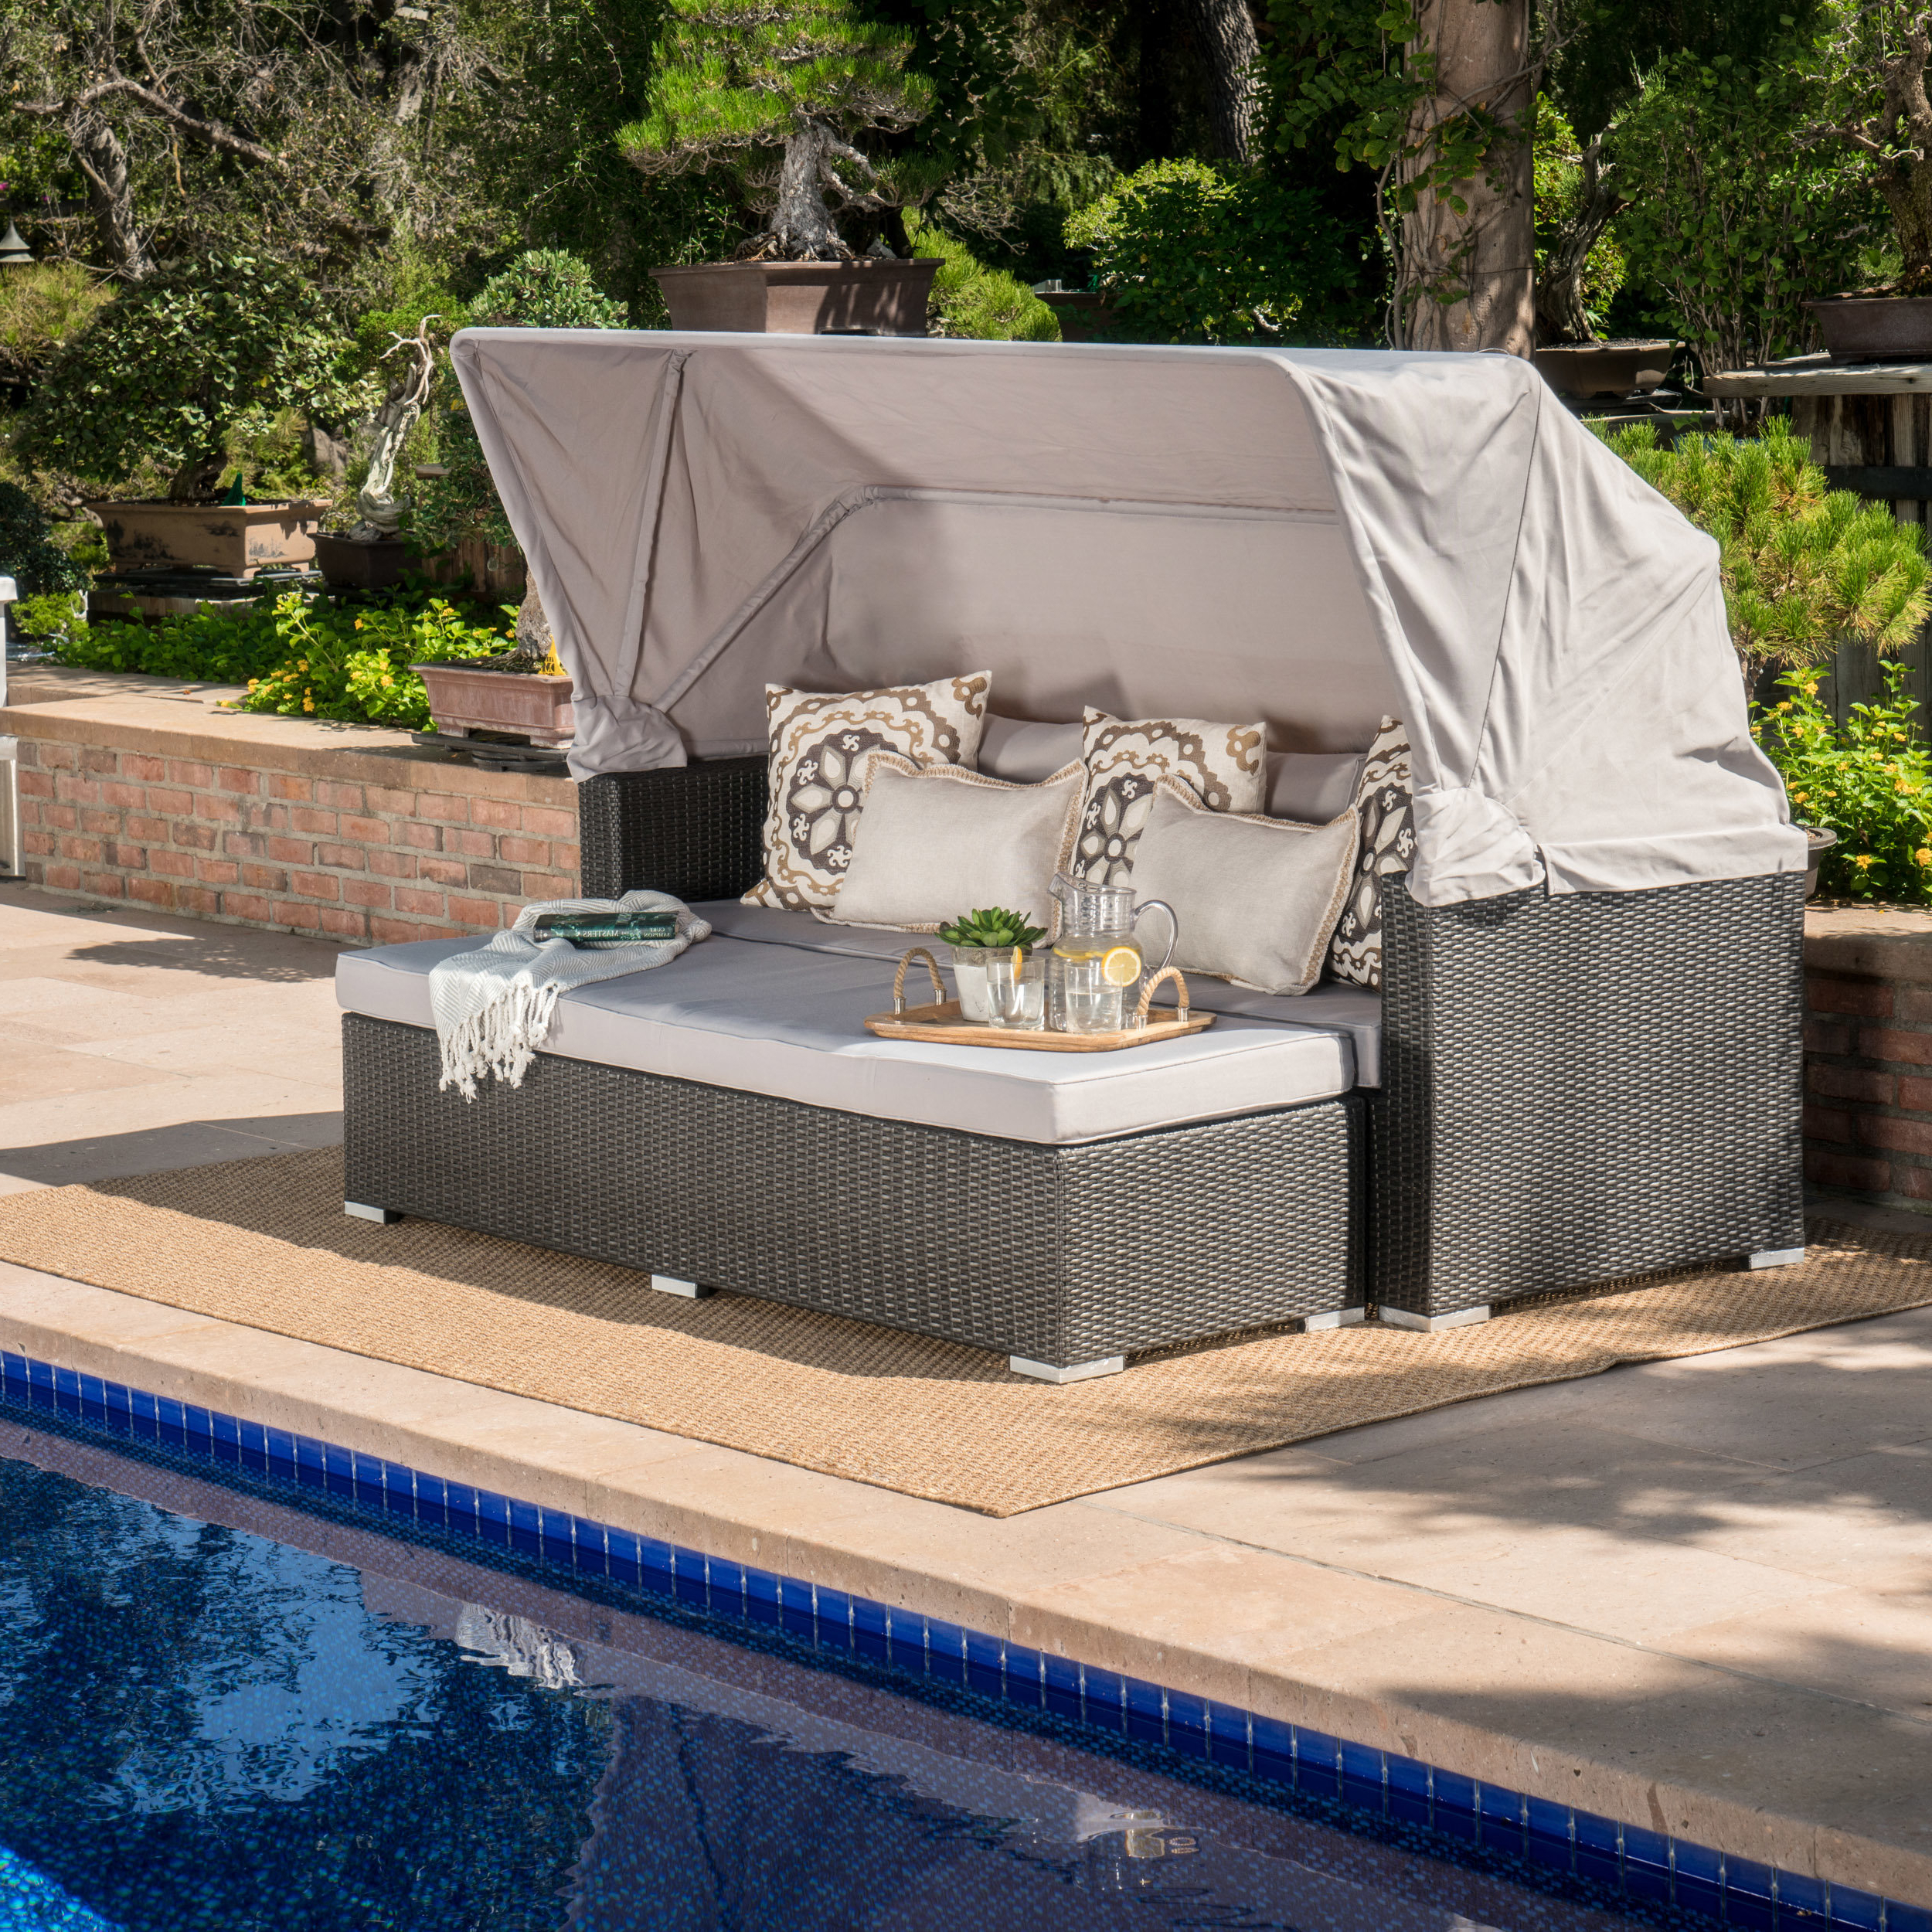 Lammers Outdoor Wicker Daybed With Cushions Regarding Well Known Hatley Patio Daybeds With Cushions (View 12 of 20)